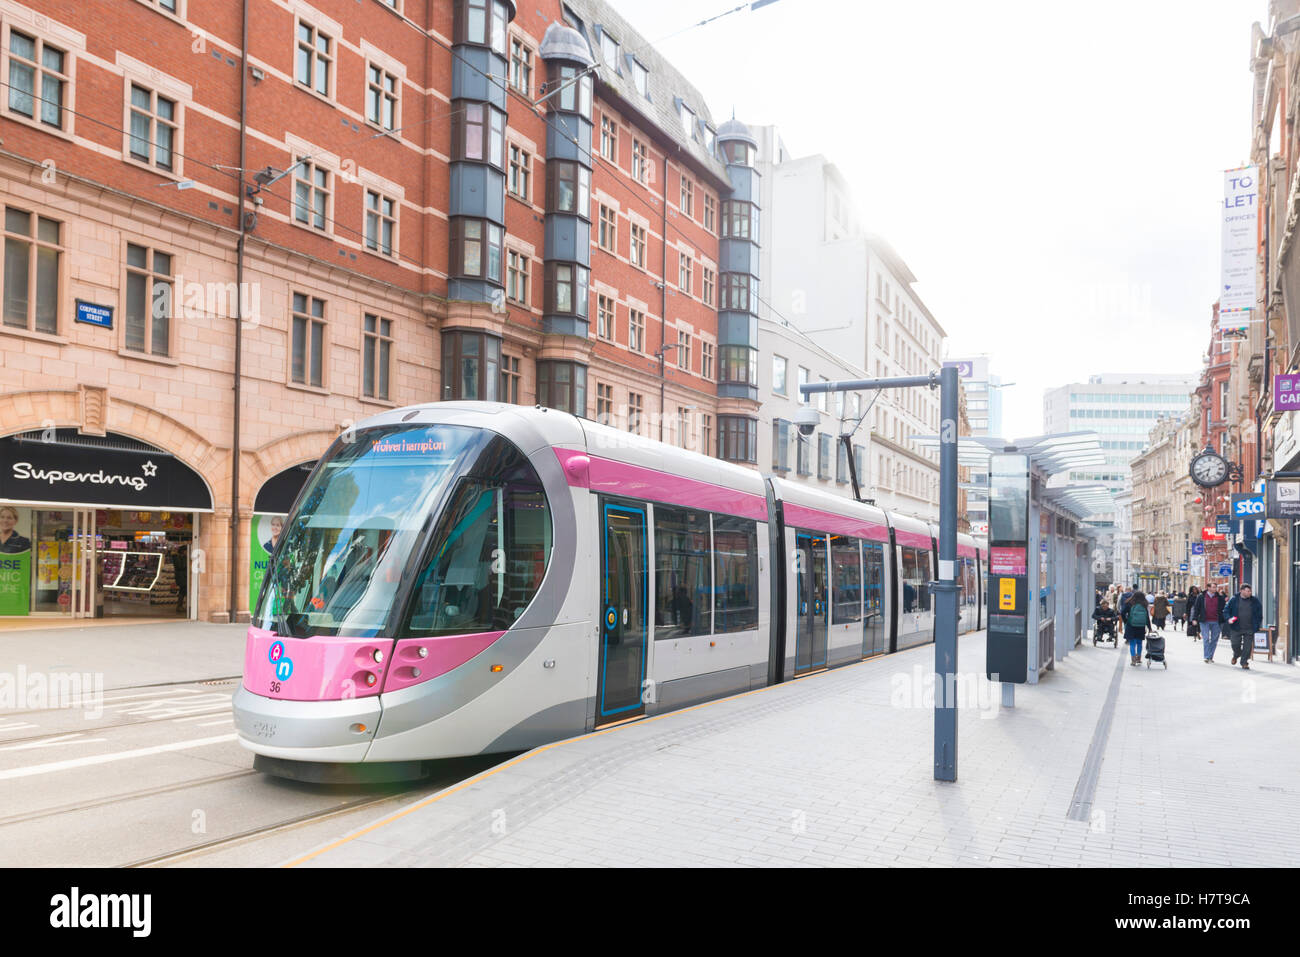 A tram in Birmingham City Centre, England. Corporation Street. - Stock Image